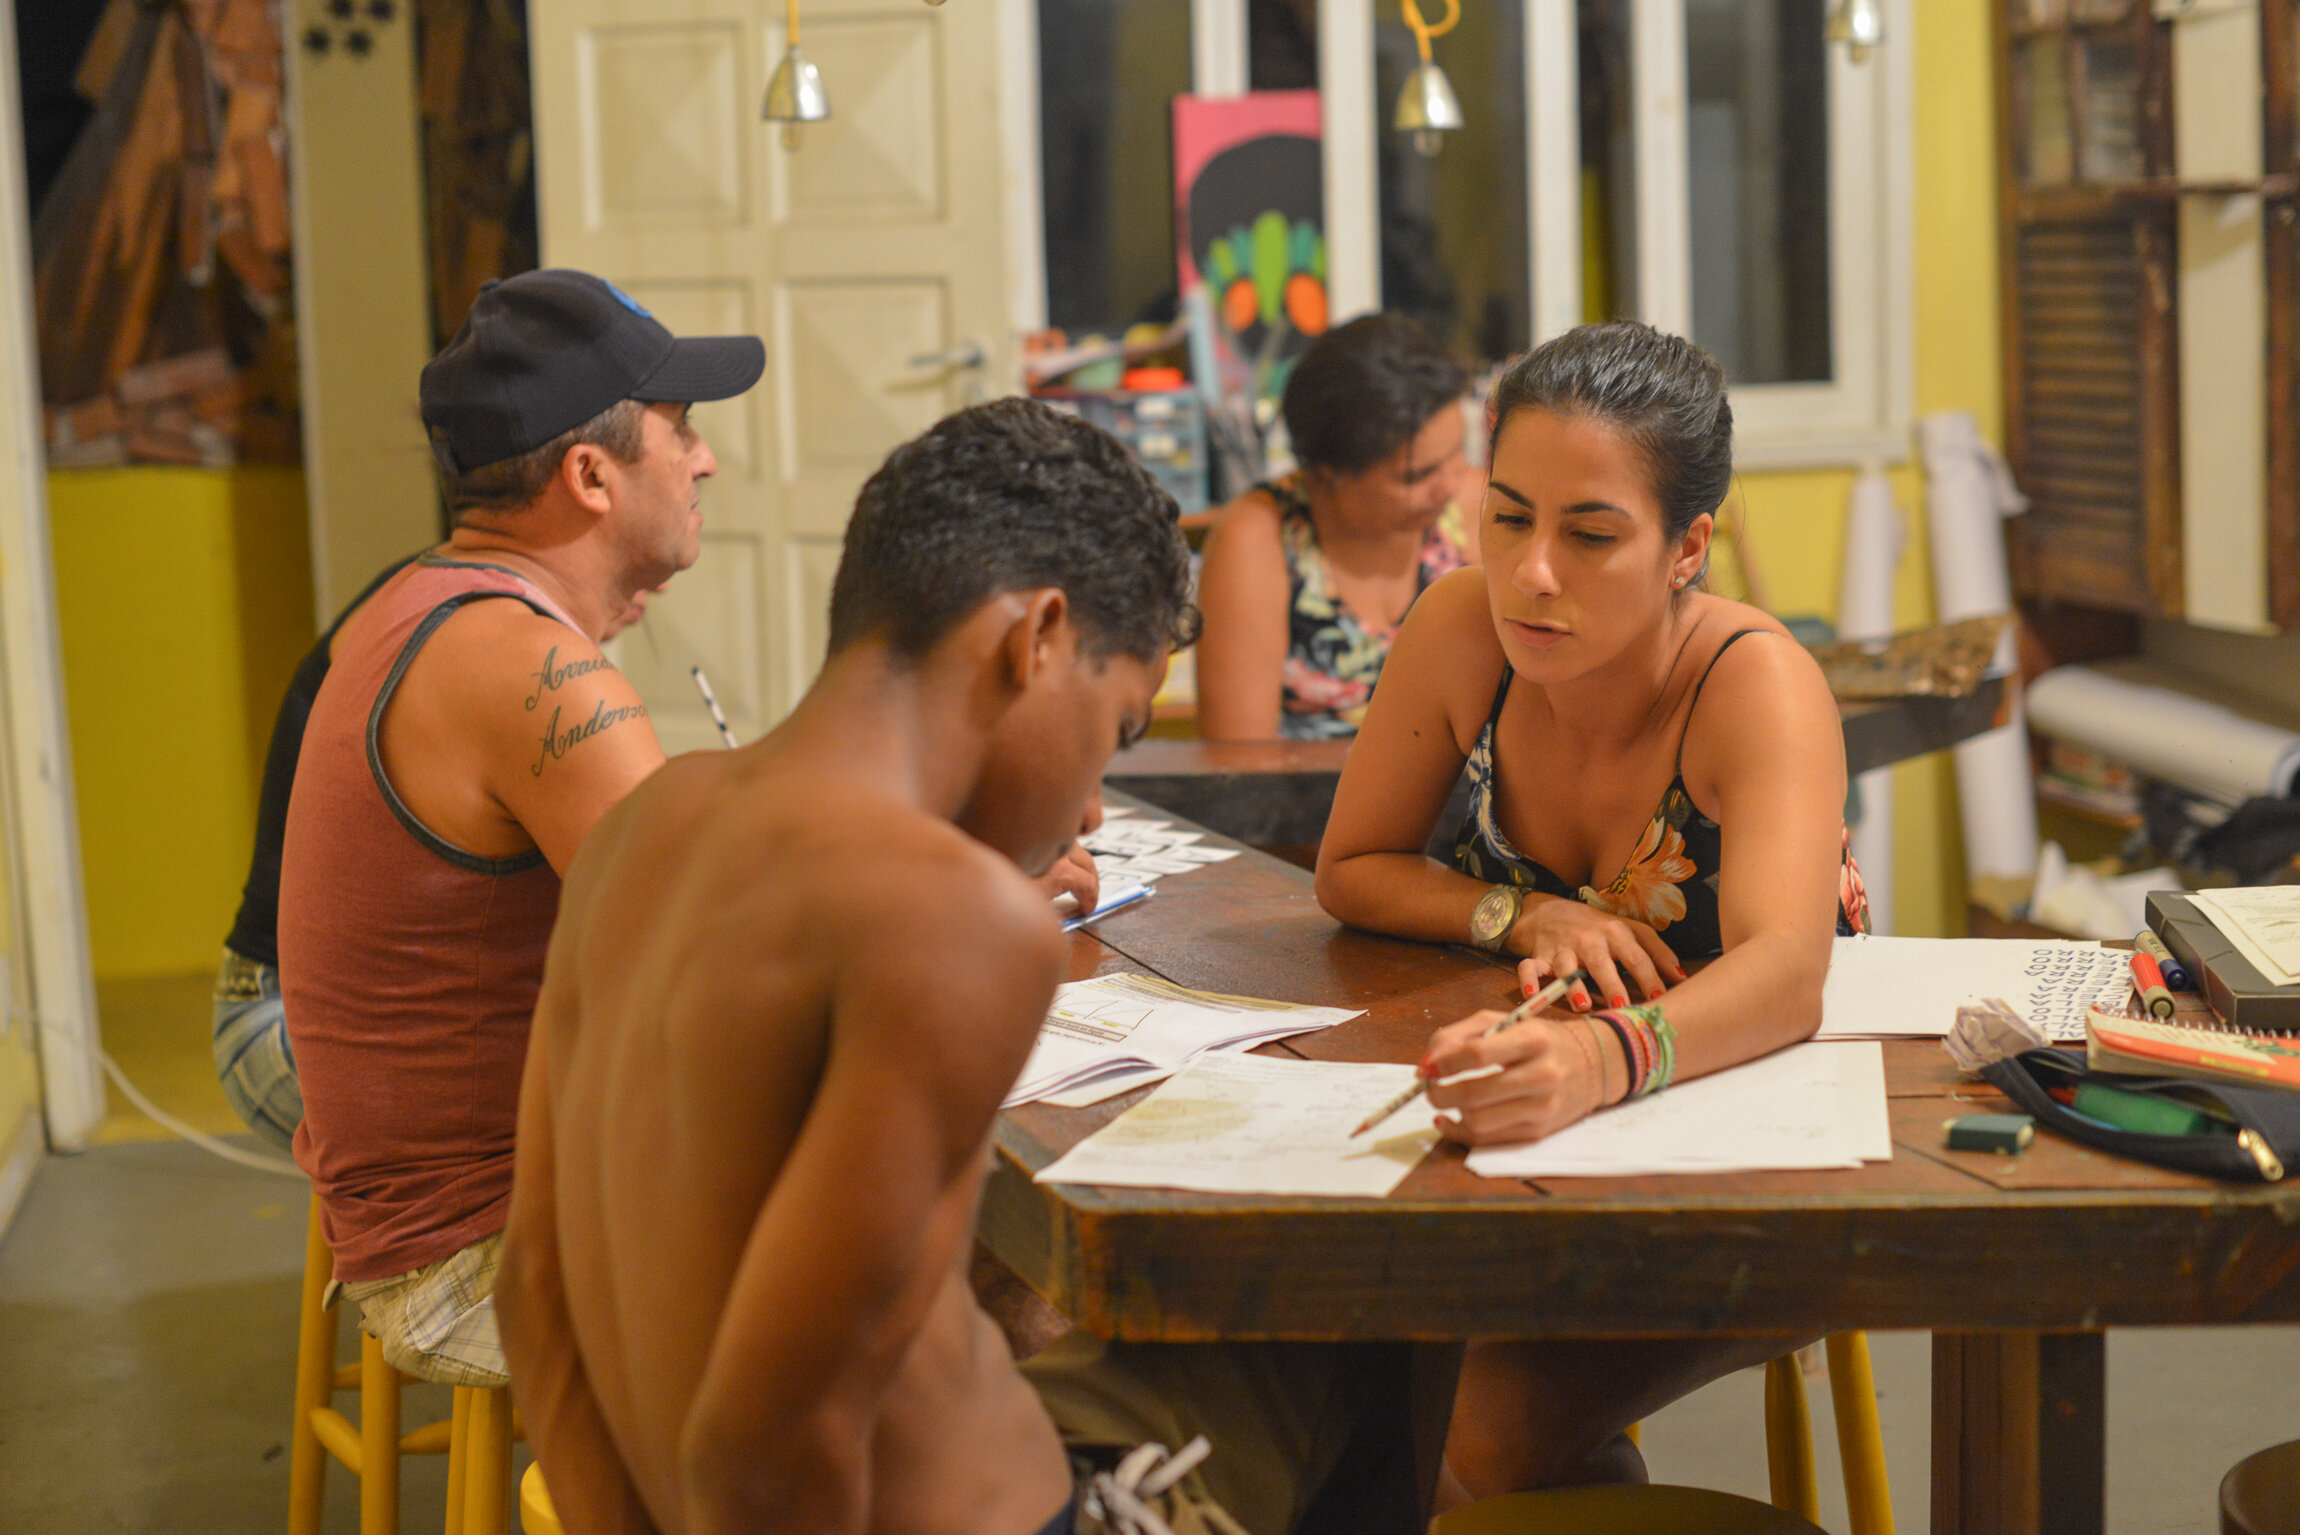 Bianca Whately - Adult literacy and multidisciplinary learning   Passionate about teaching and - even more so - learning, sharing and adding to people who also believe that even the moon is not the limit when we are and do for each other.  Professor at the Fluminense Federal University (UFF) and collaborator in adult literacy and multidisciplinary learning at Casa Amarela.